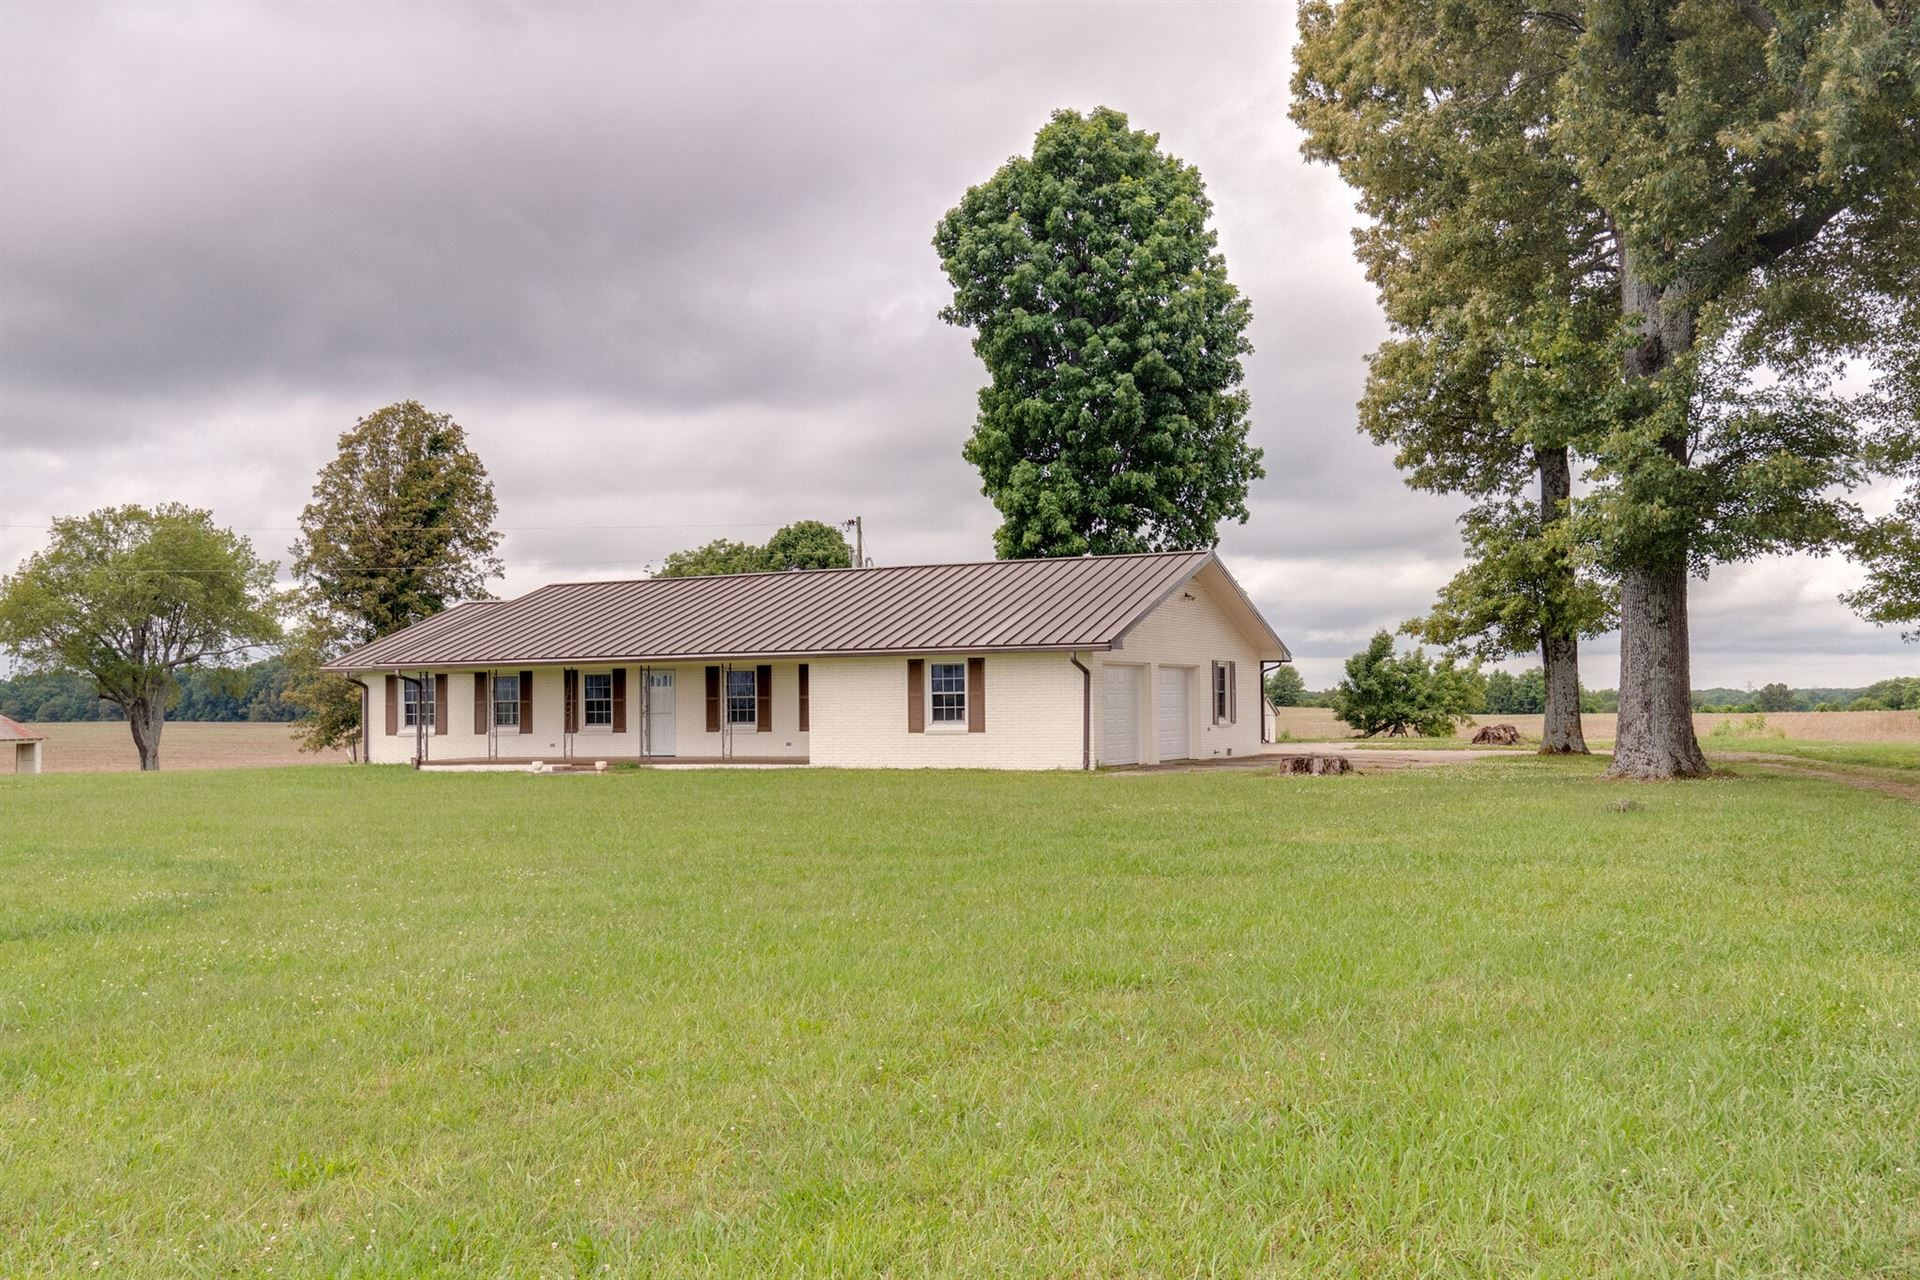 Photo of 941 Peabody Rd, Winchester, TN 37398 (MLS # 2263233)